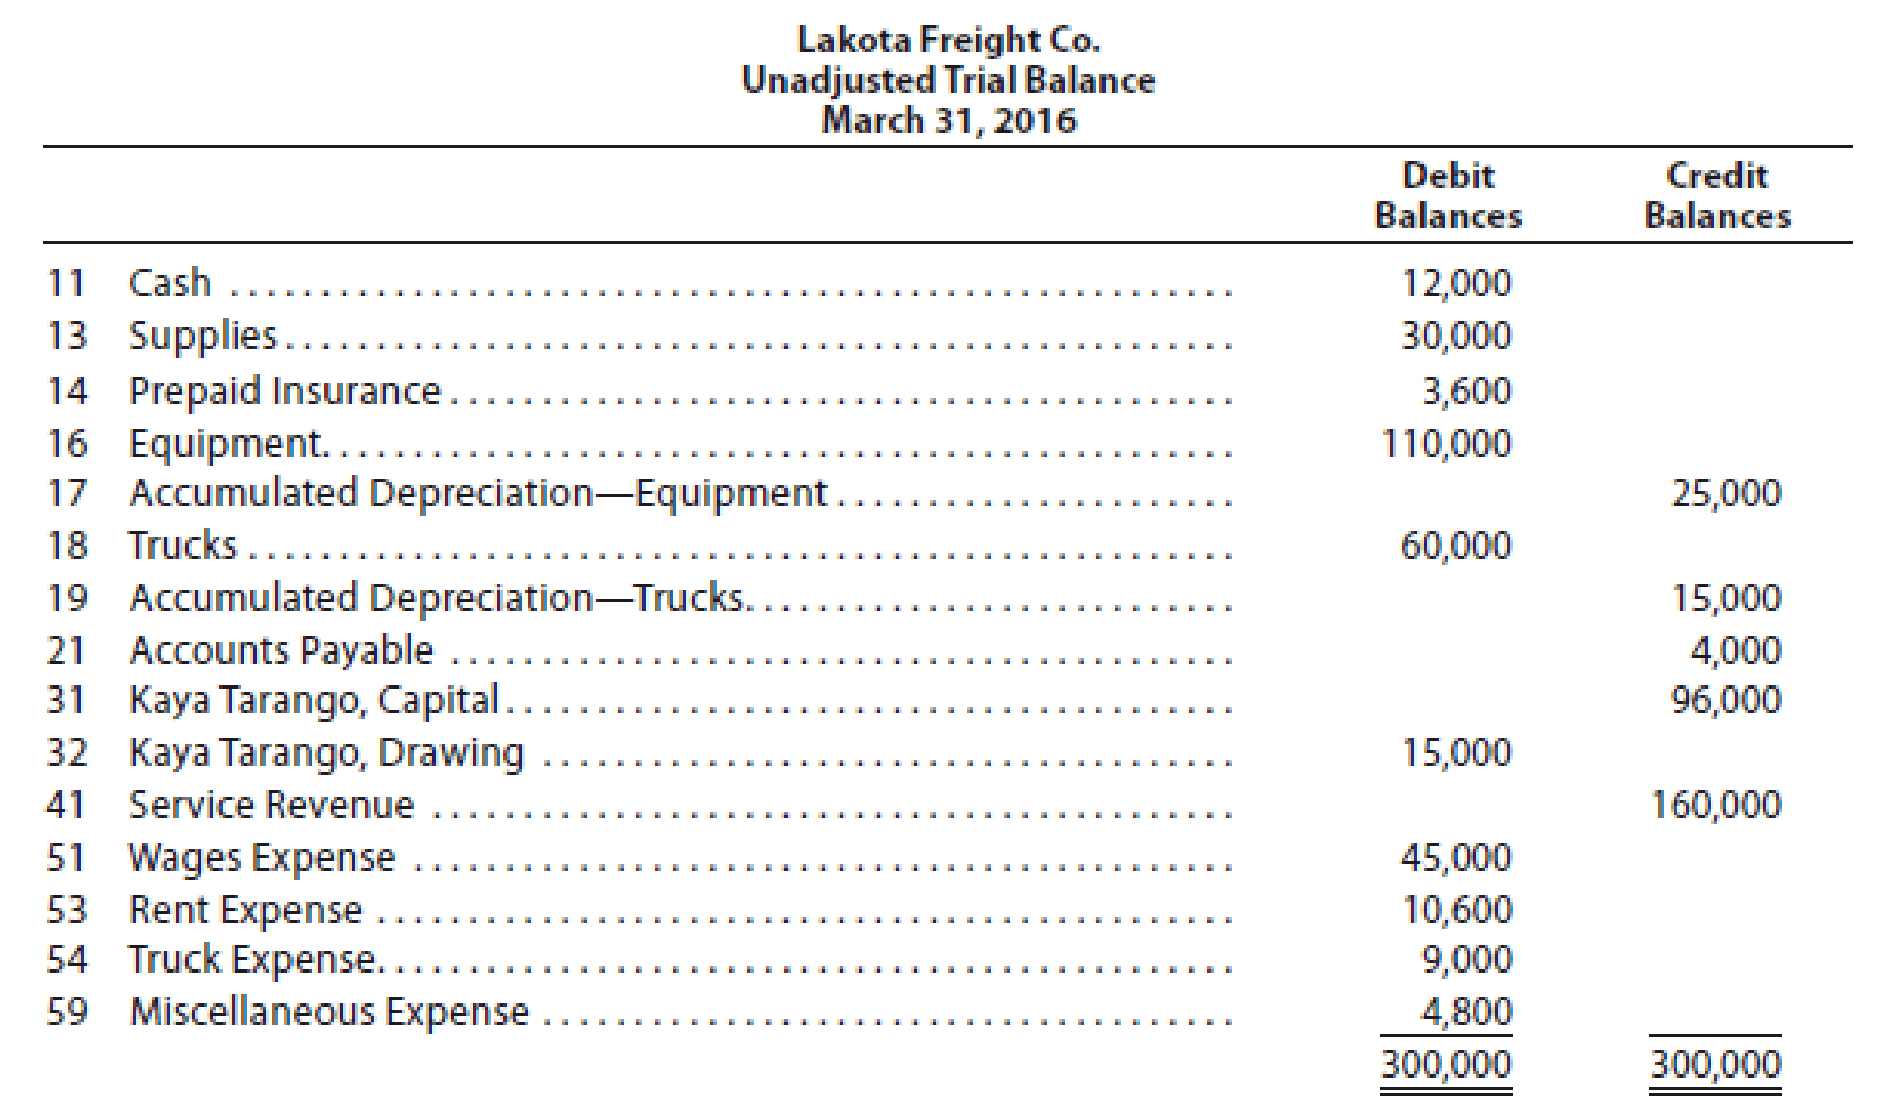 The Unadjusted Trial Balance Of Lakota Freight Co At